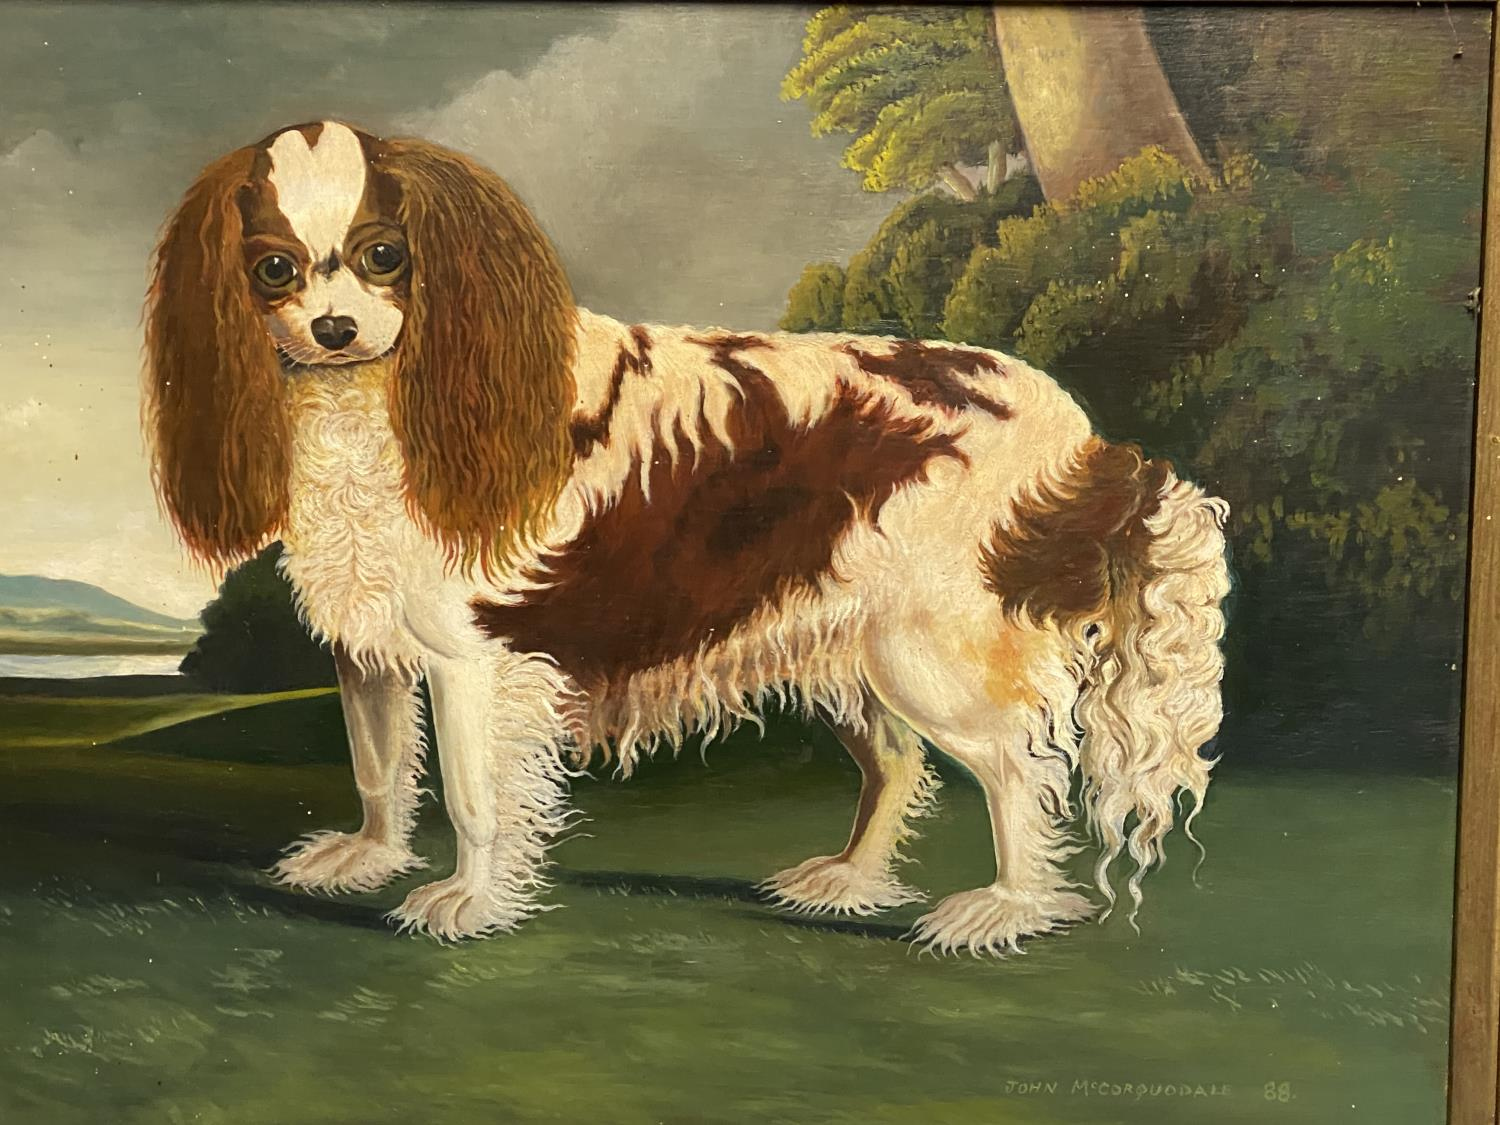 C20th oil on board, study of a King Charles Spaniel, signed and dated John McCorquodale 88, 40 x - Image 2 of 4